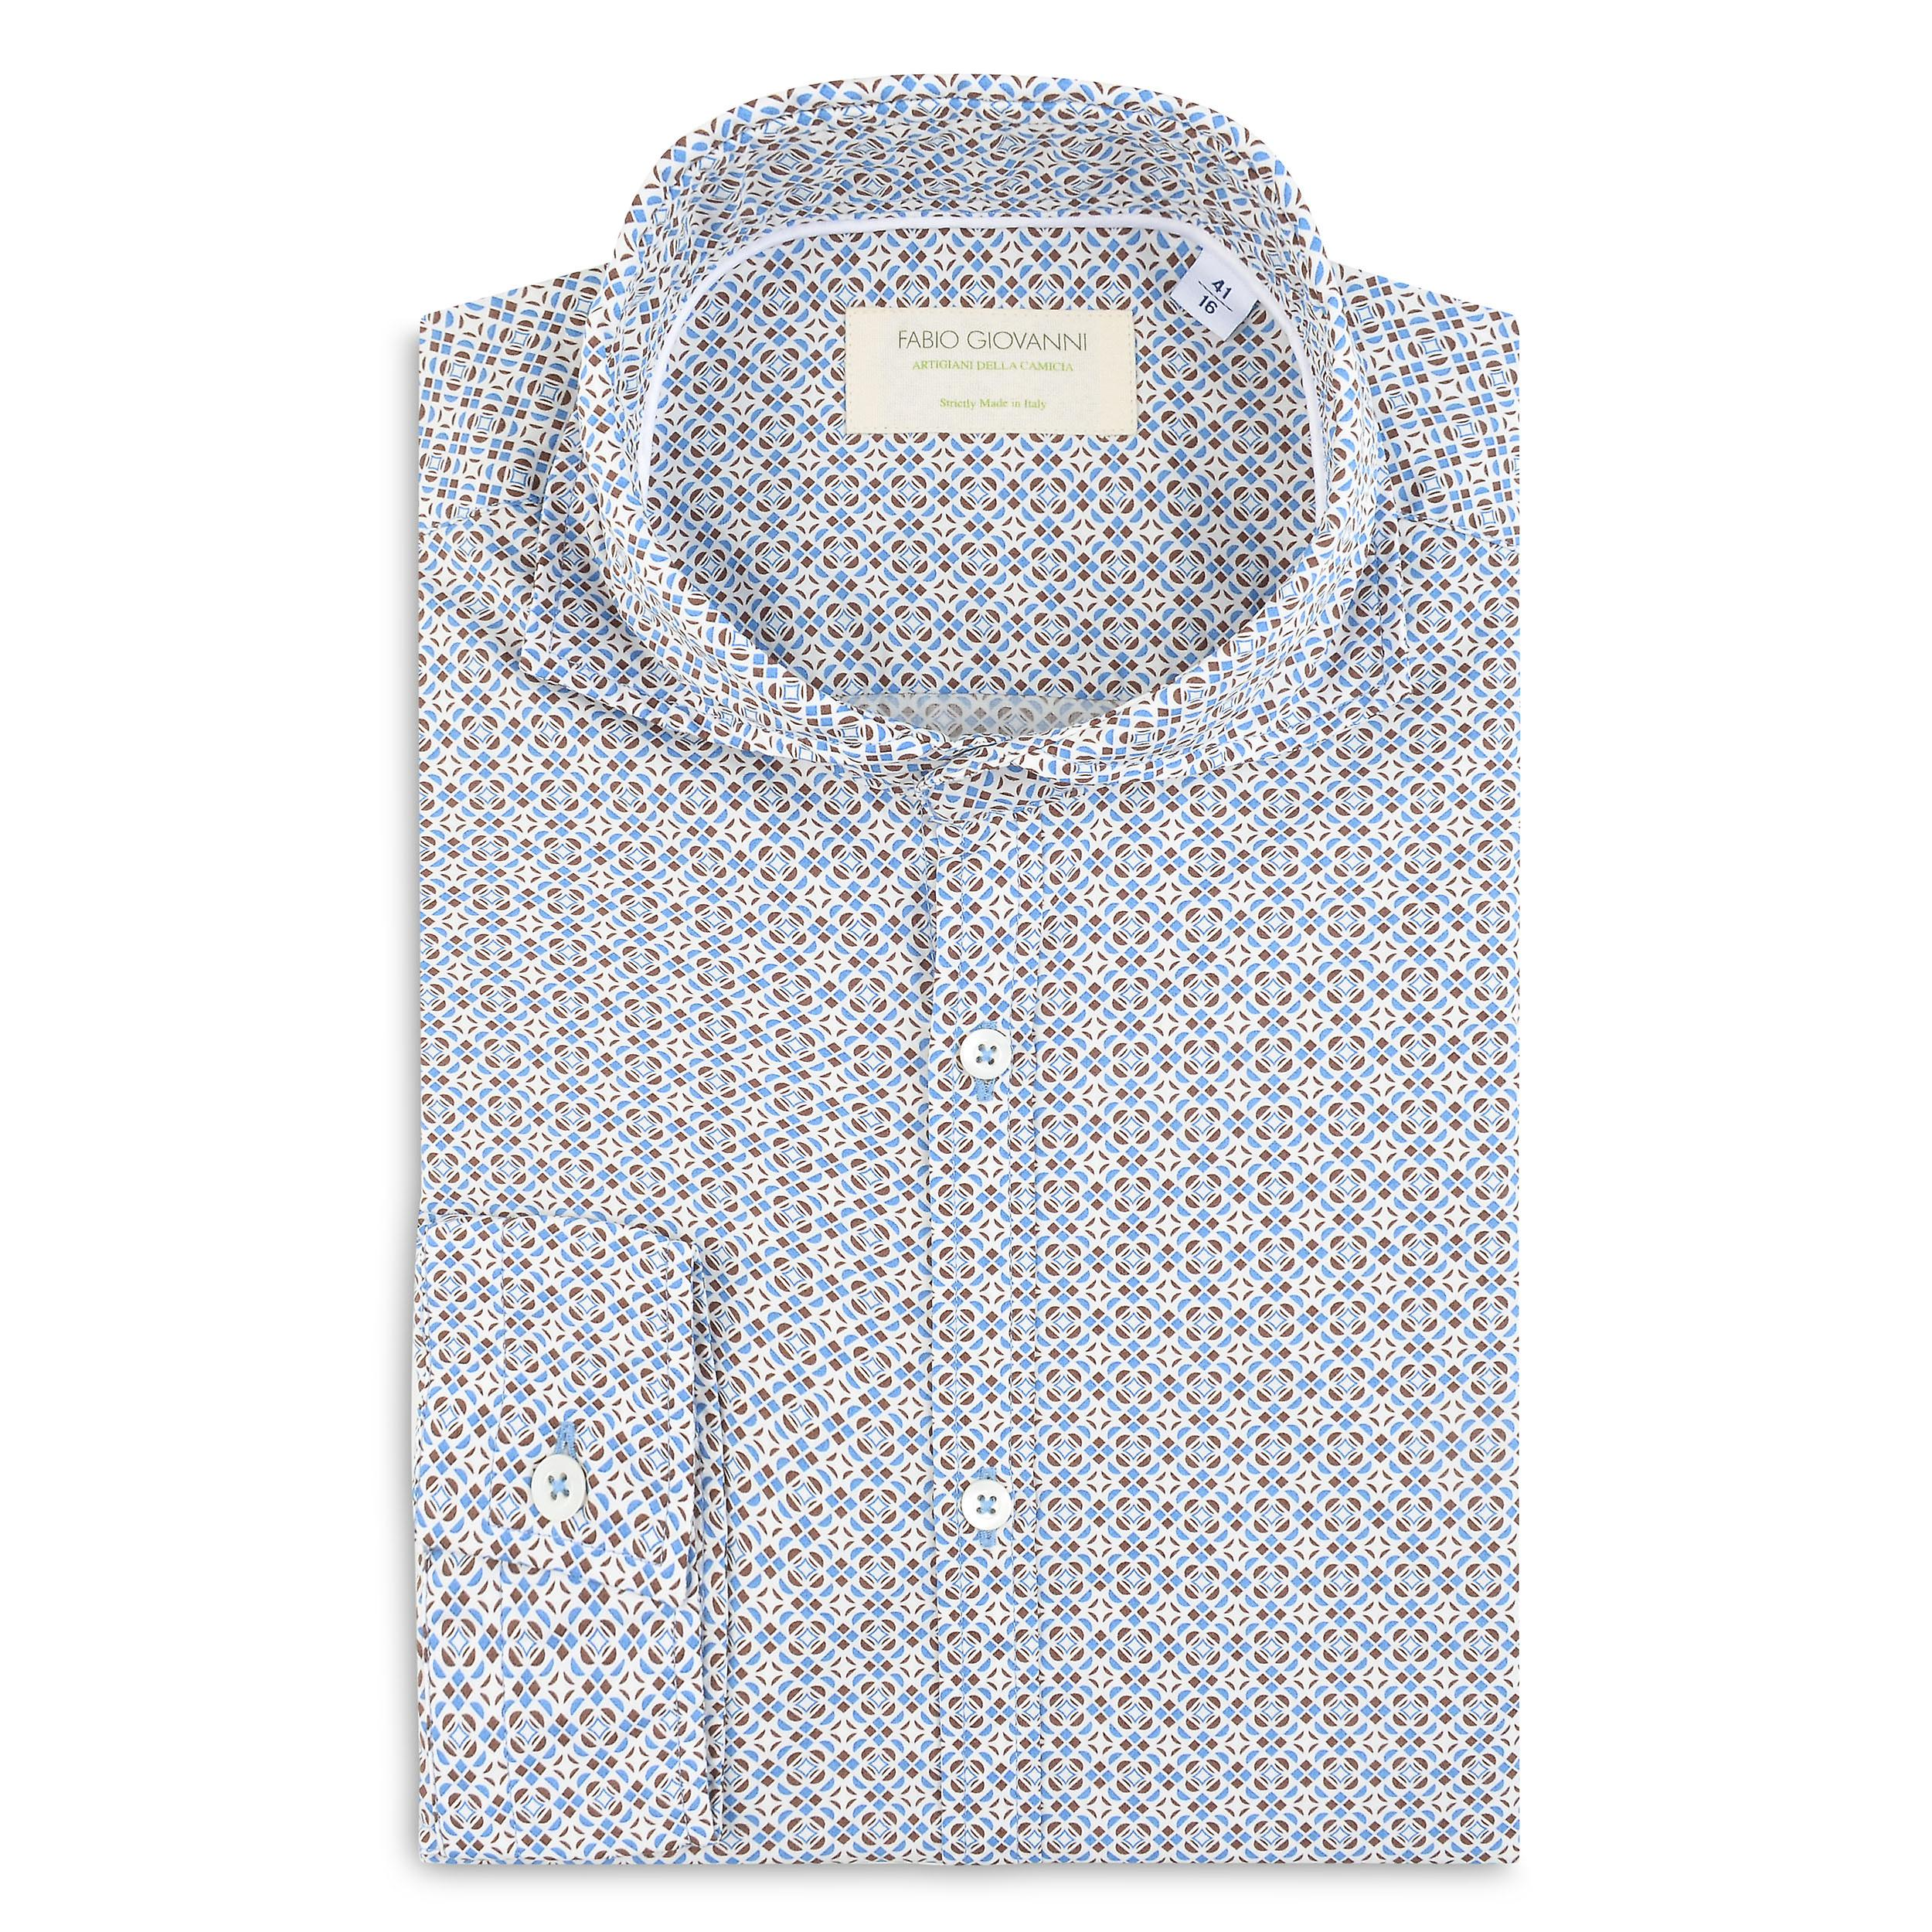 Fabio Giovanni Rivello Shirt - High Qulity Italian Poplin Cotton with Geometric Print Shirt